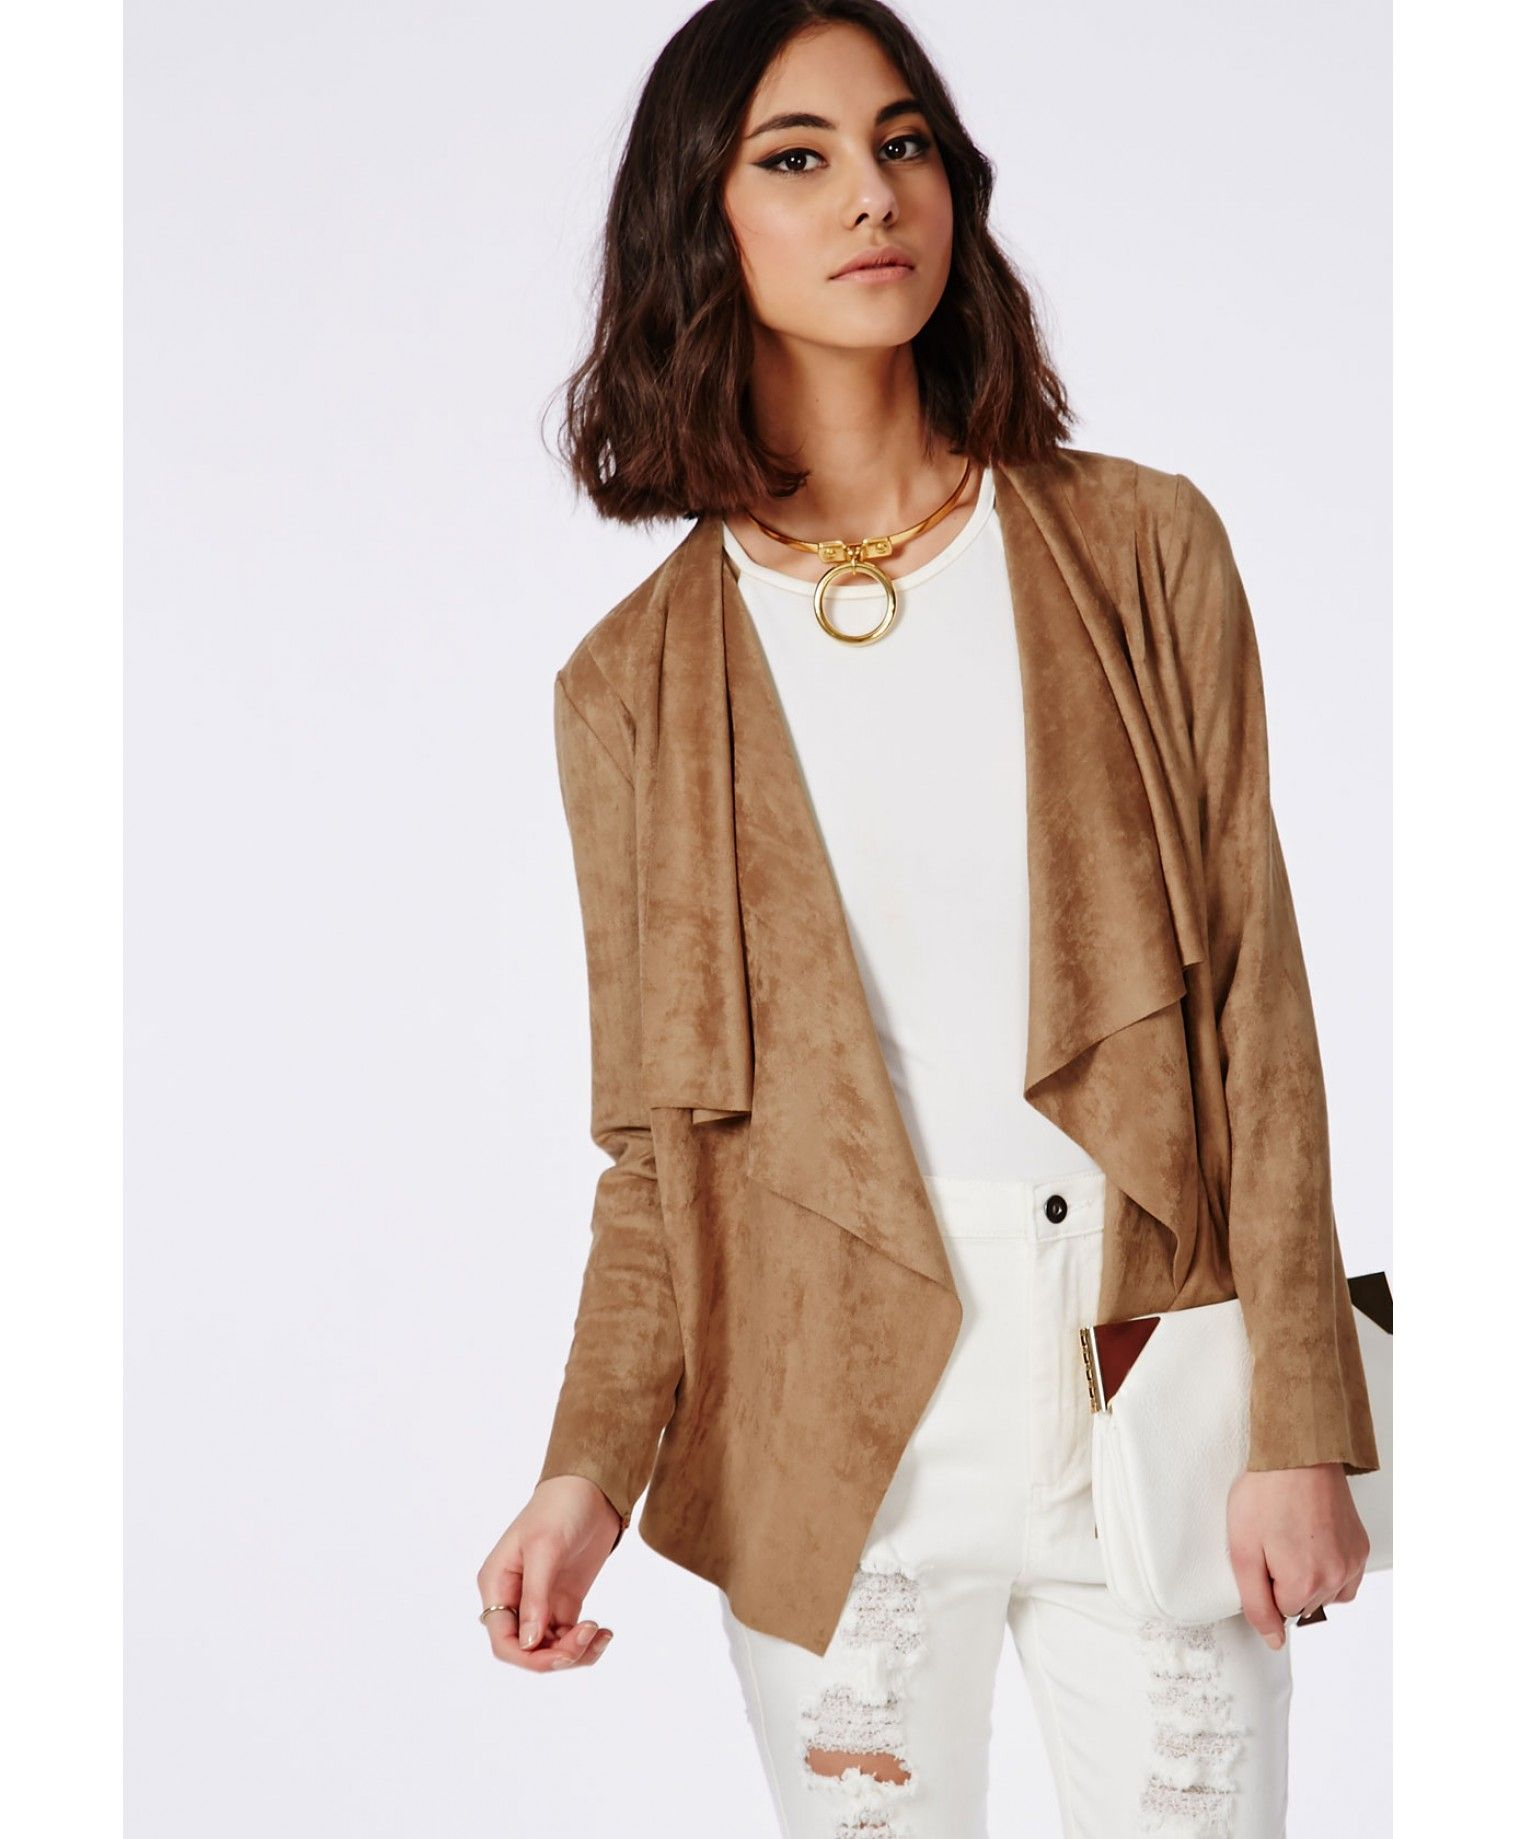 96482f238 Faux Suede Waterfall Jacket Tan - Coats & Jackets - Missguided ...